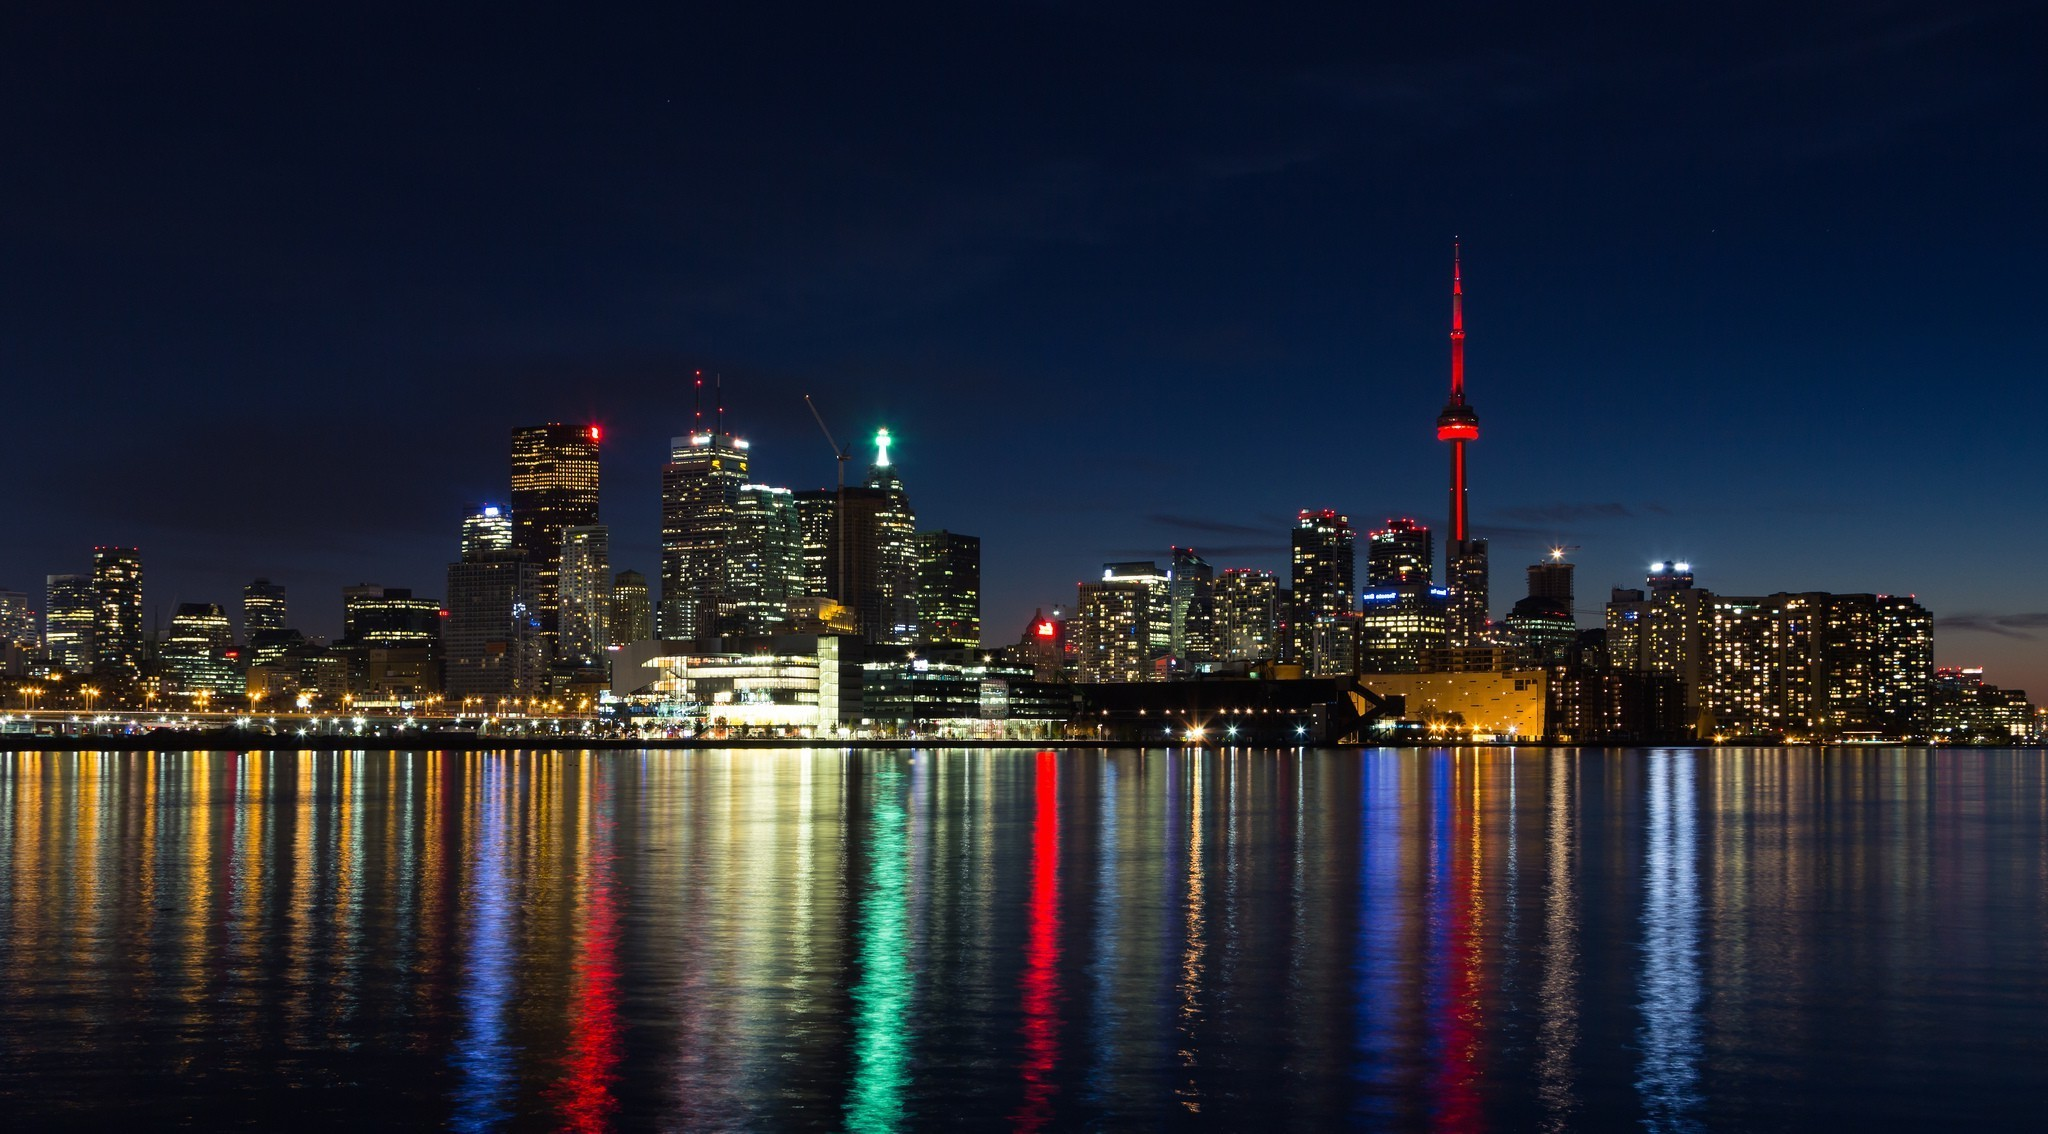 2048x1134 Toronto Wallpapers (41 Wallpapers) – Adorable Wallpapers